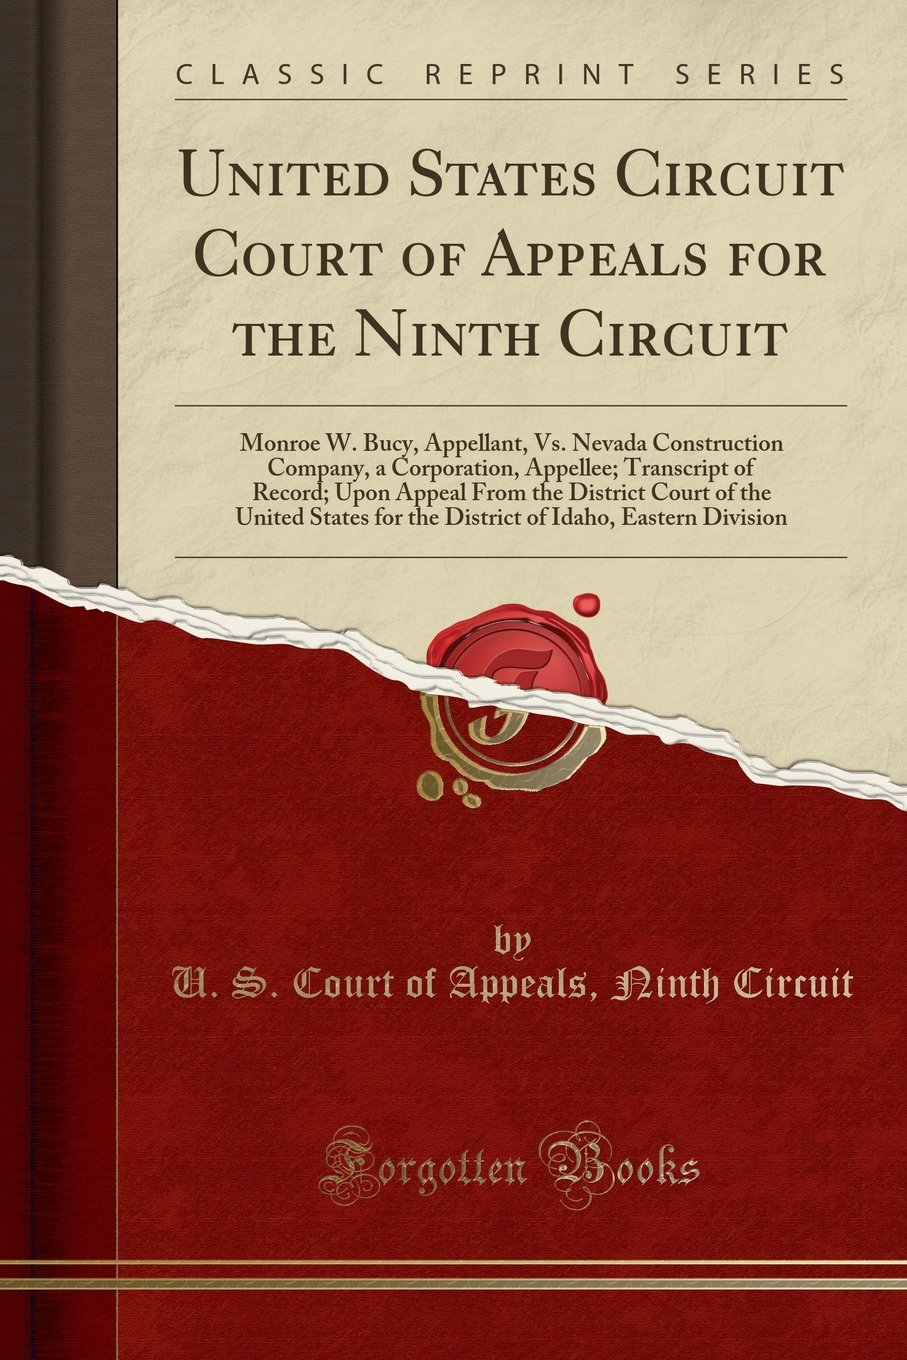 Download United States Circuit Court of Appeals for the Ninth Circuit: Monroe W. Bucy, Appellant, Vs. Nevada Construction Company, a Corporation, Appellee; ... United States for the District of Idaho, Ea pdf